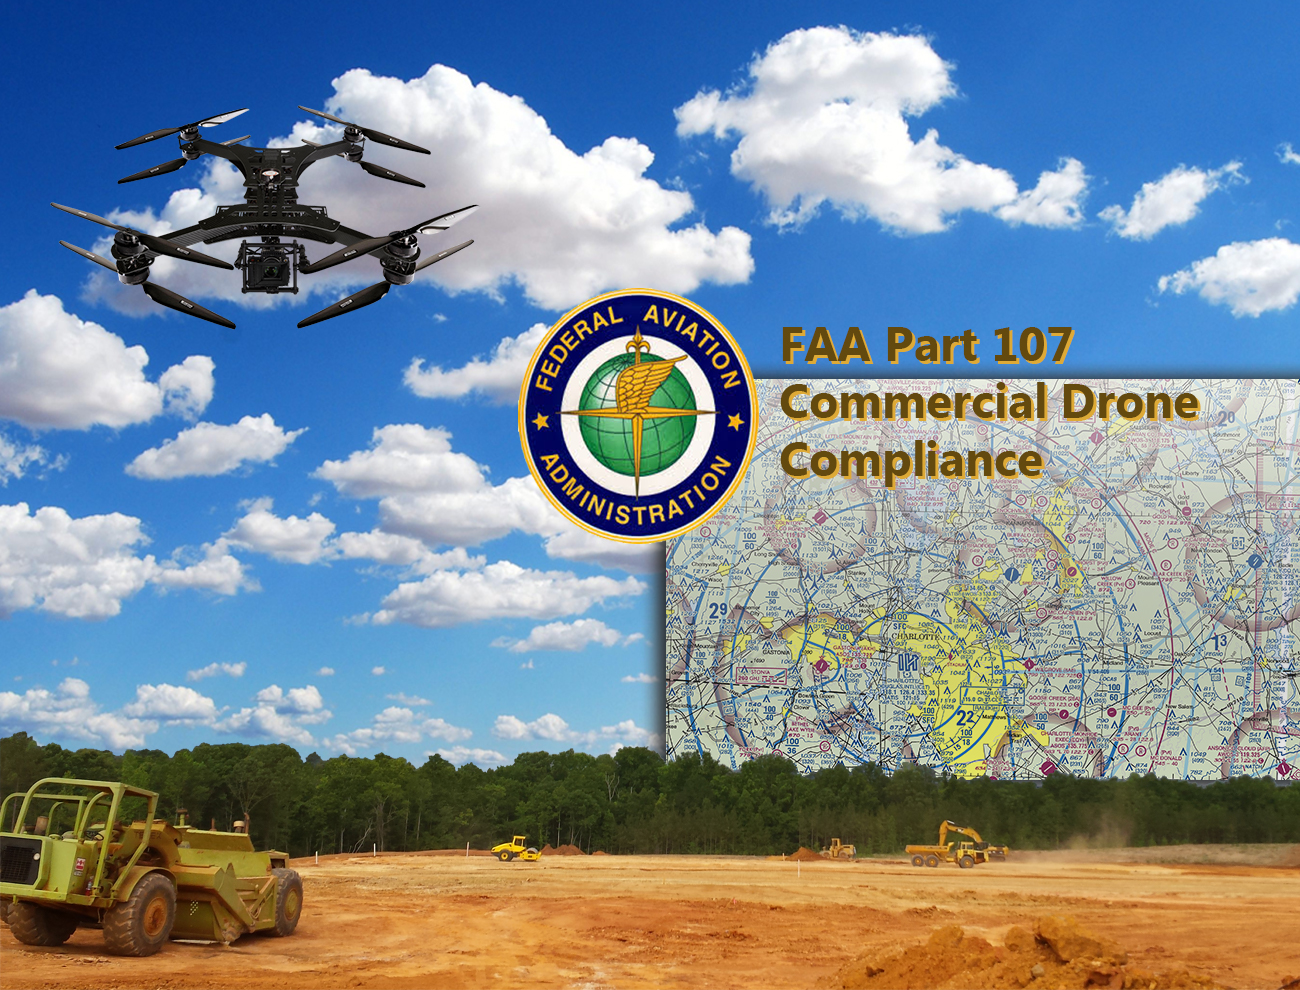 Boyle UAV and Part 107 compliance